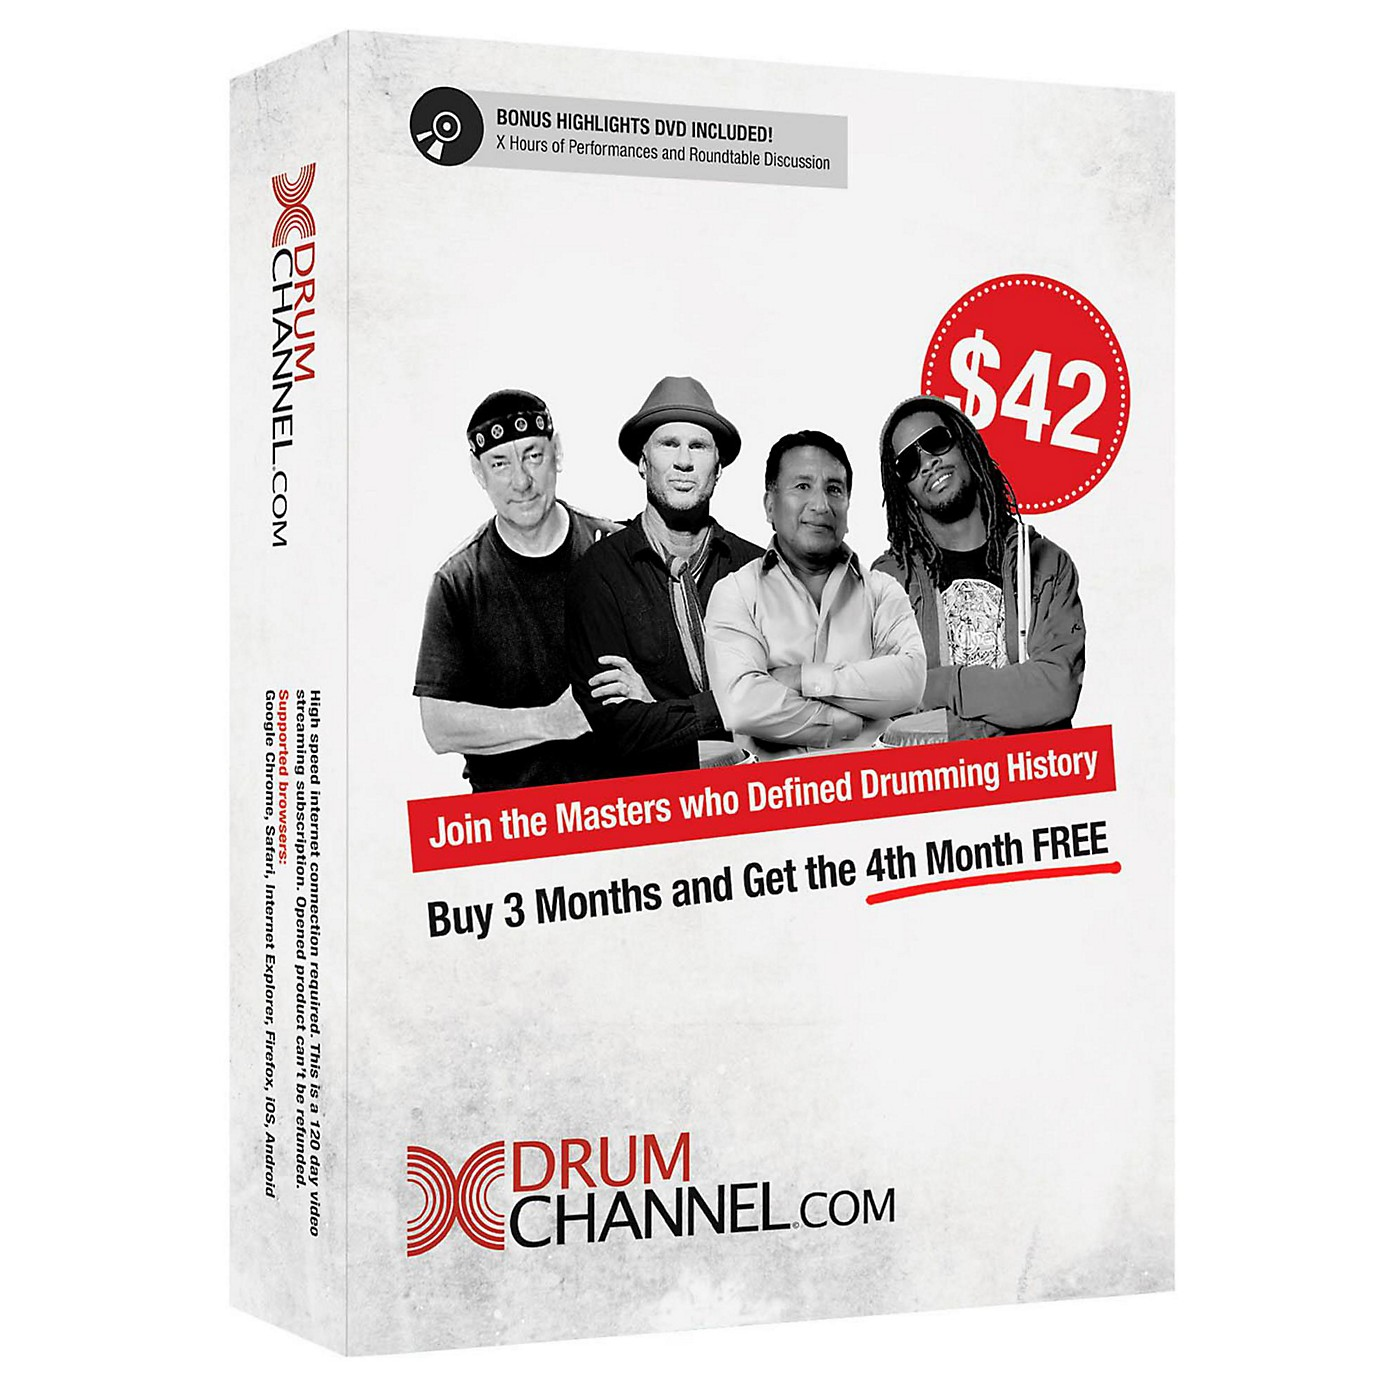 The Drum Channel Drum Channel for Drummers 3 Month Subscription with Extra Month Free! thumbnail